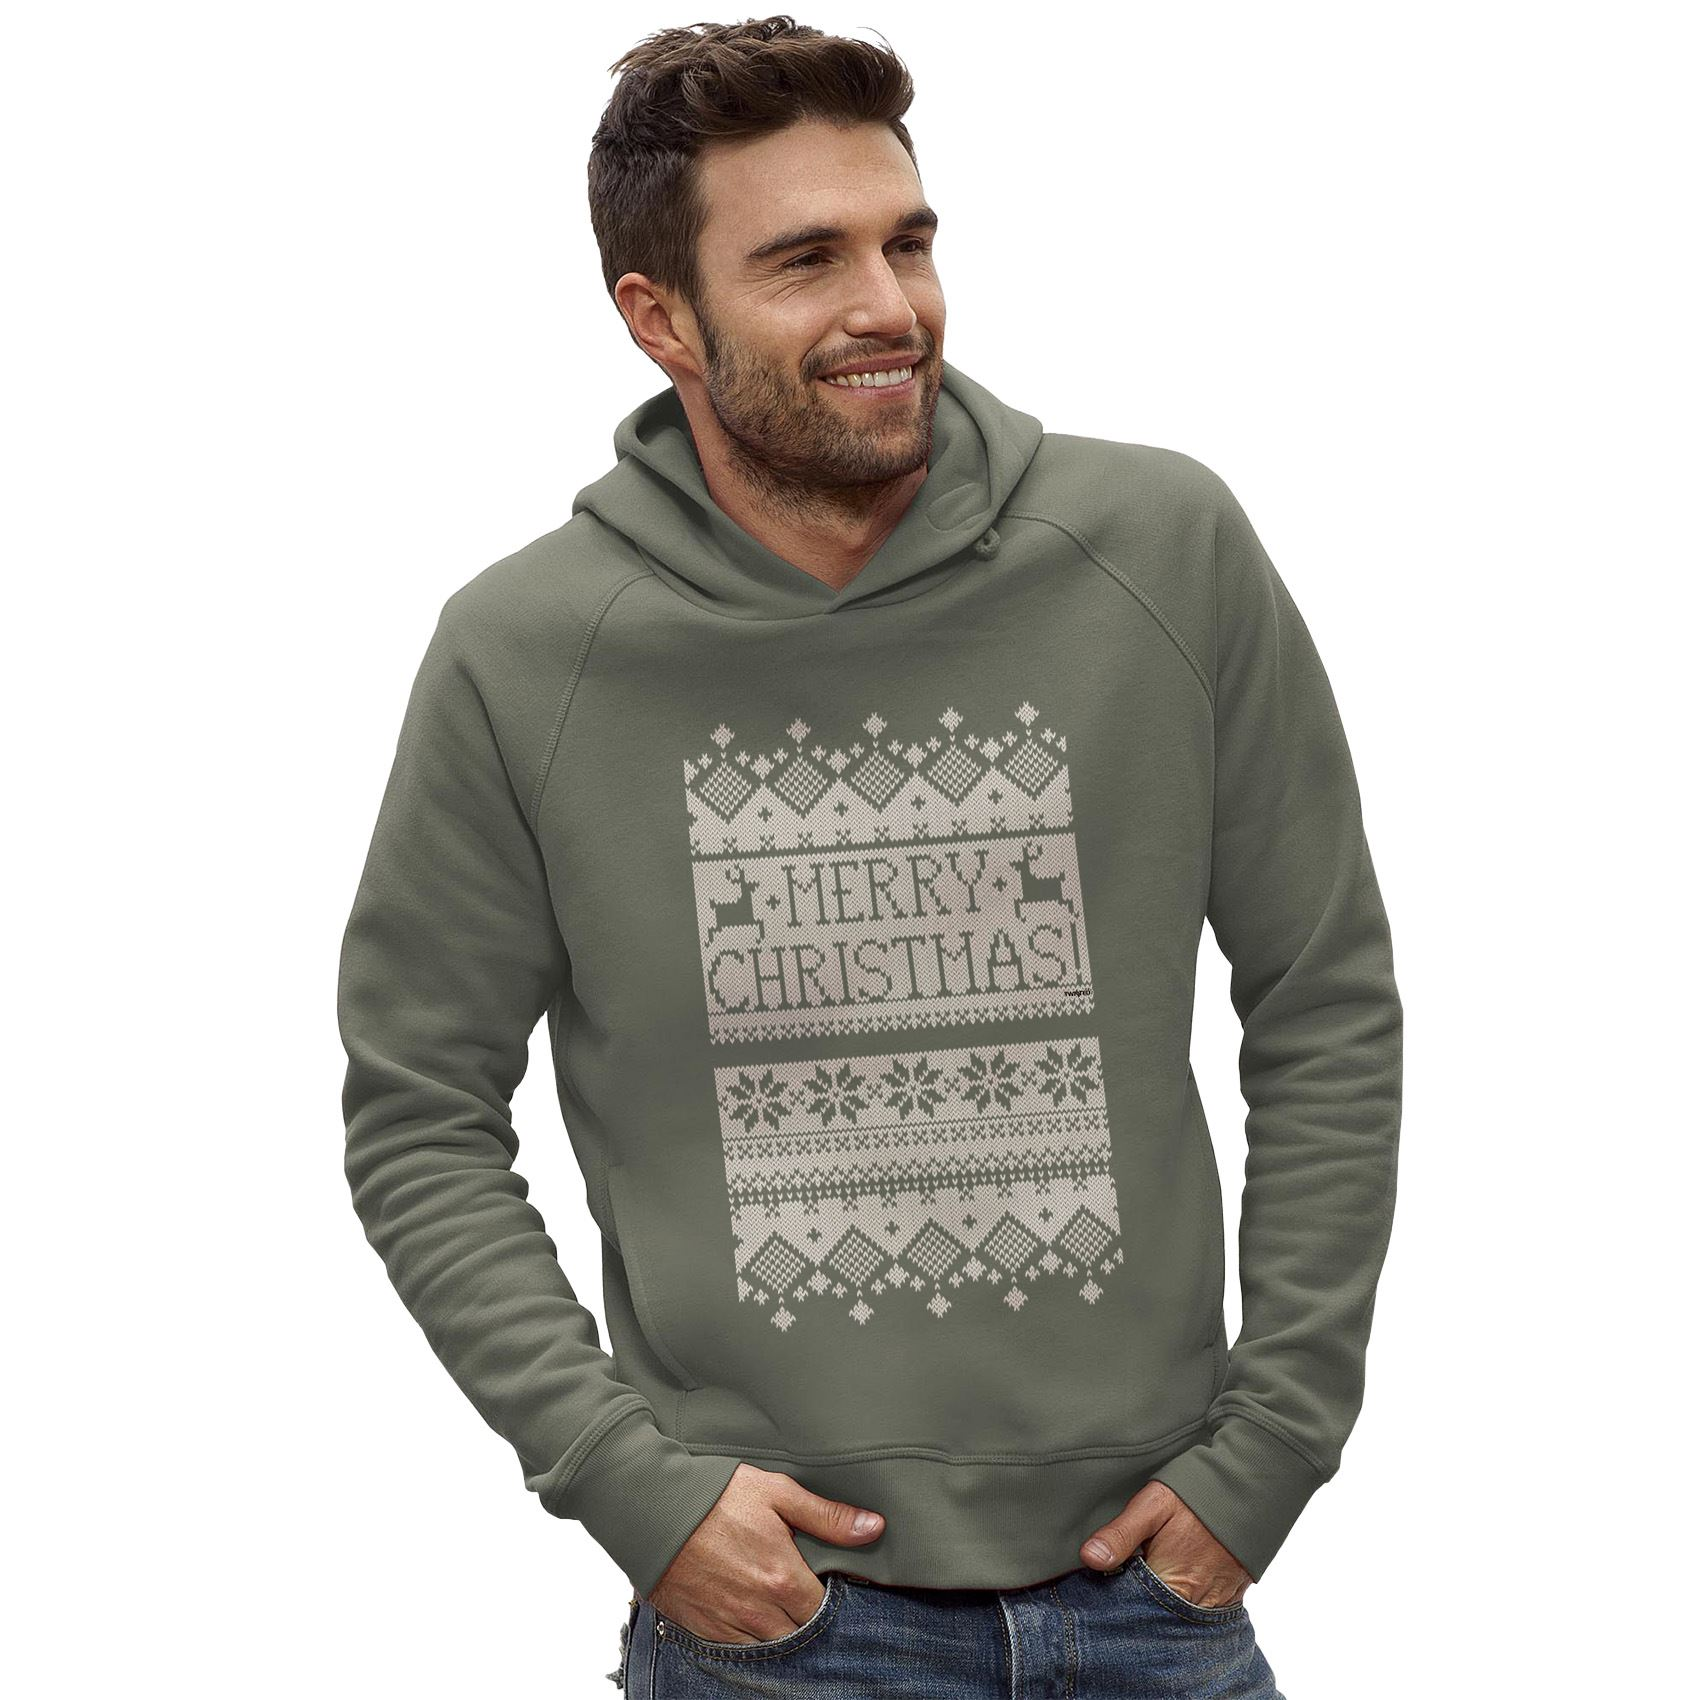 Twisted Envy Mens Merry Christmas Ugly Christmas Sweater Funny